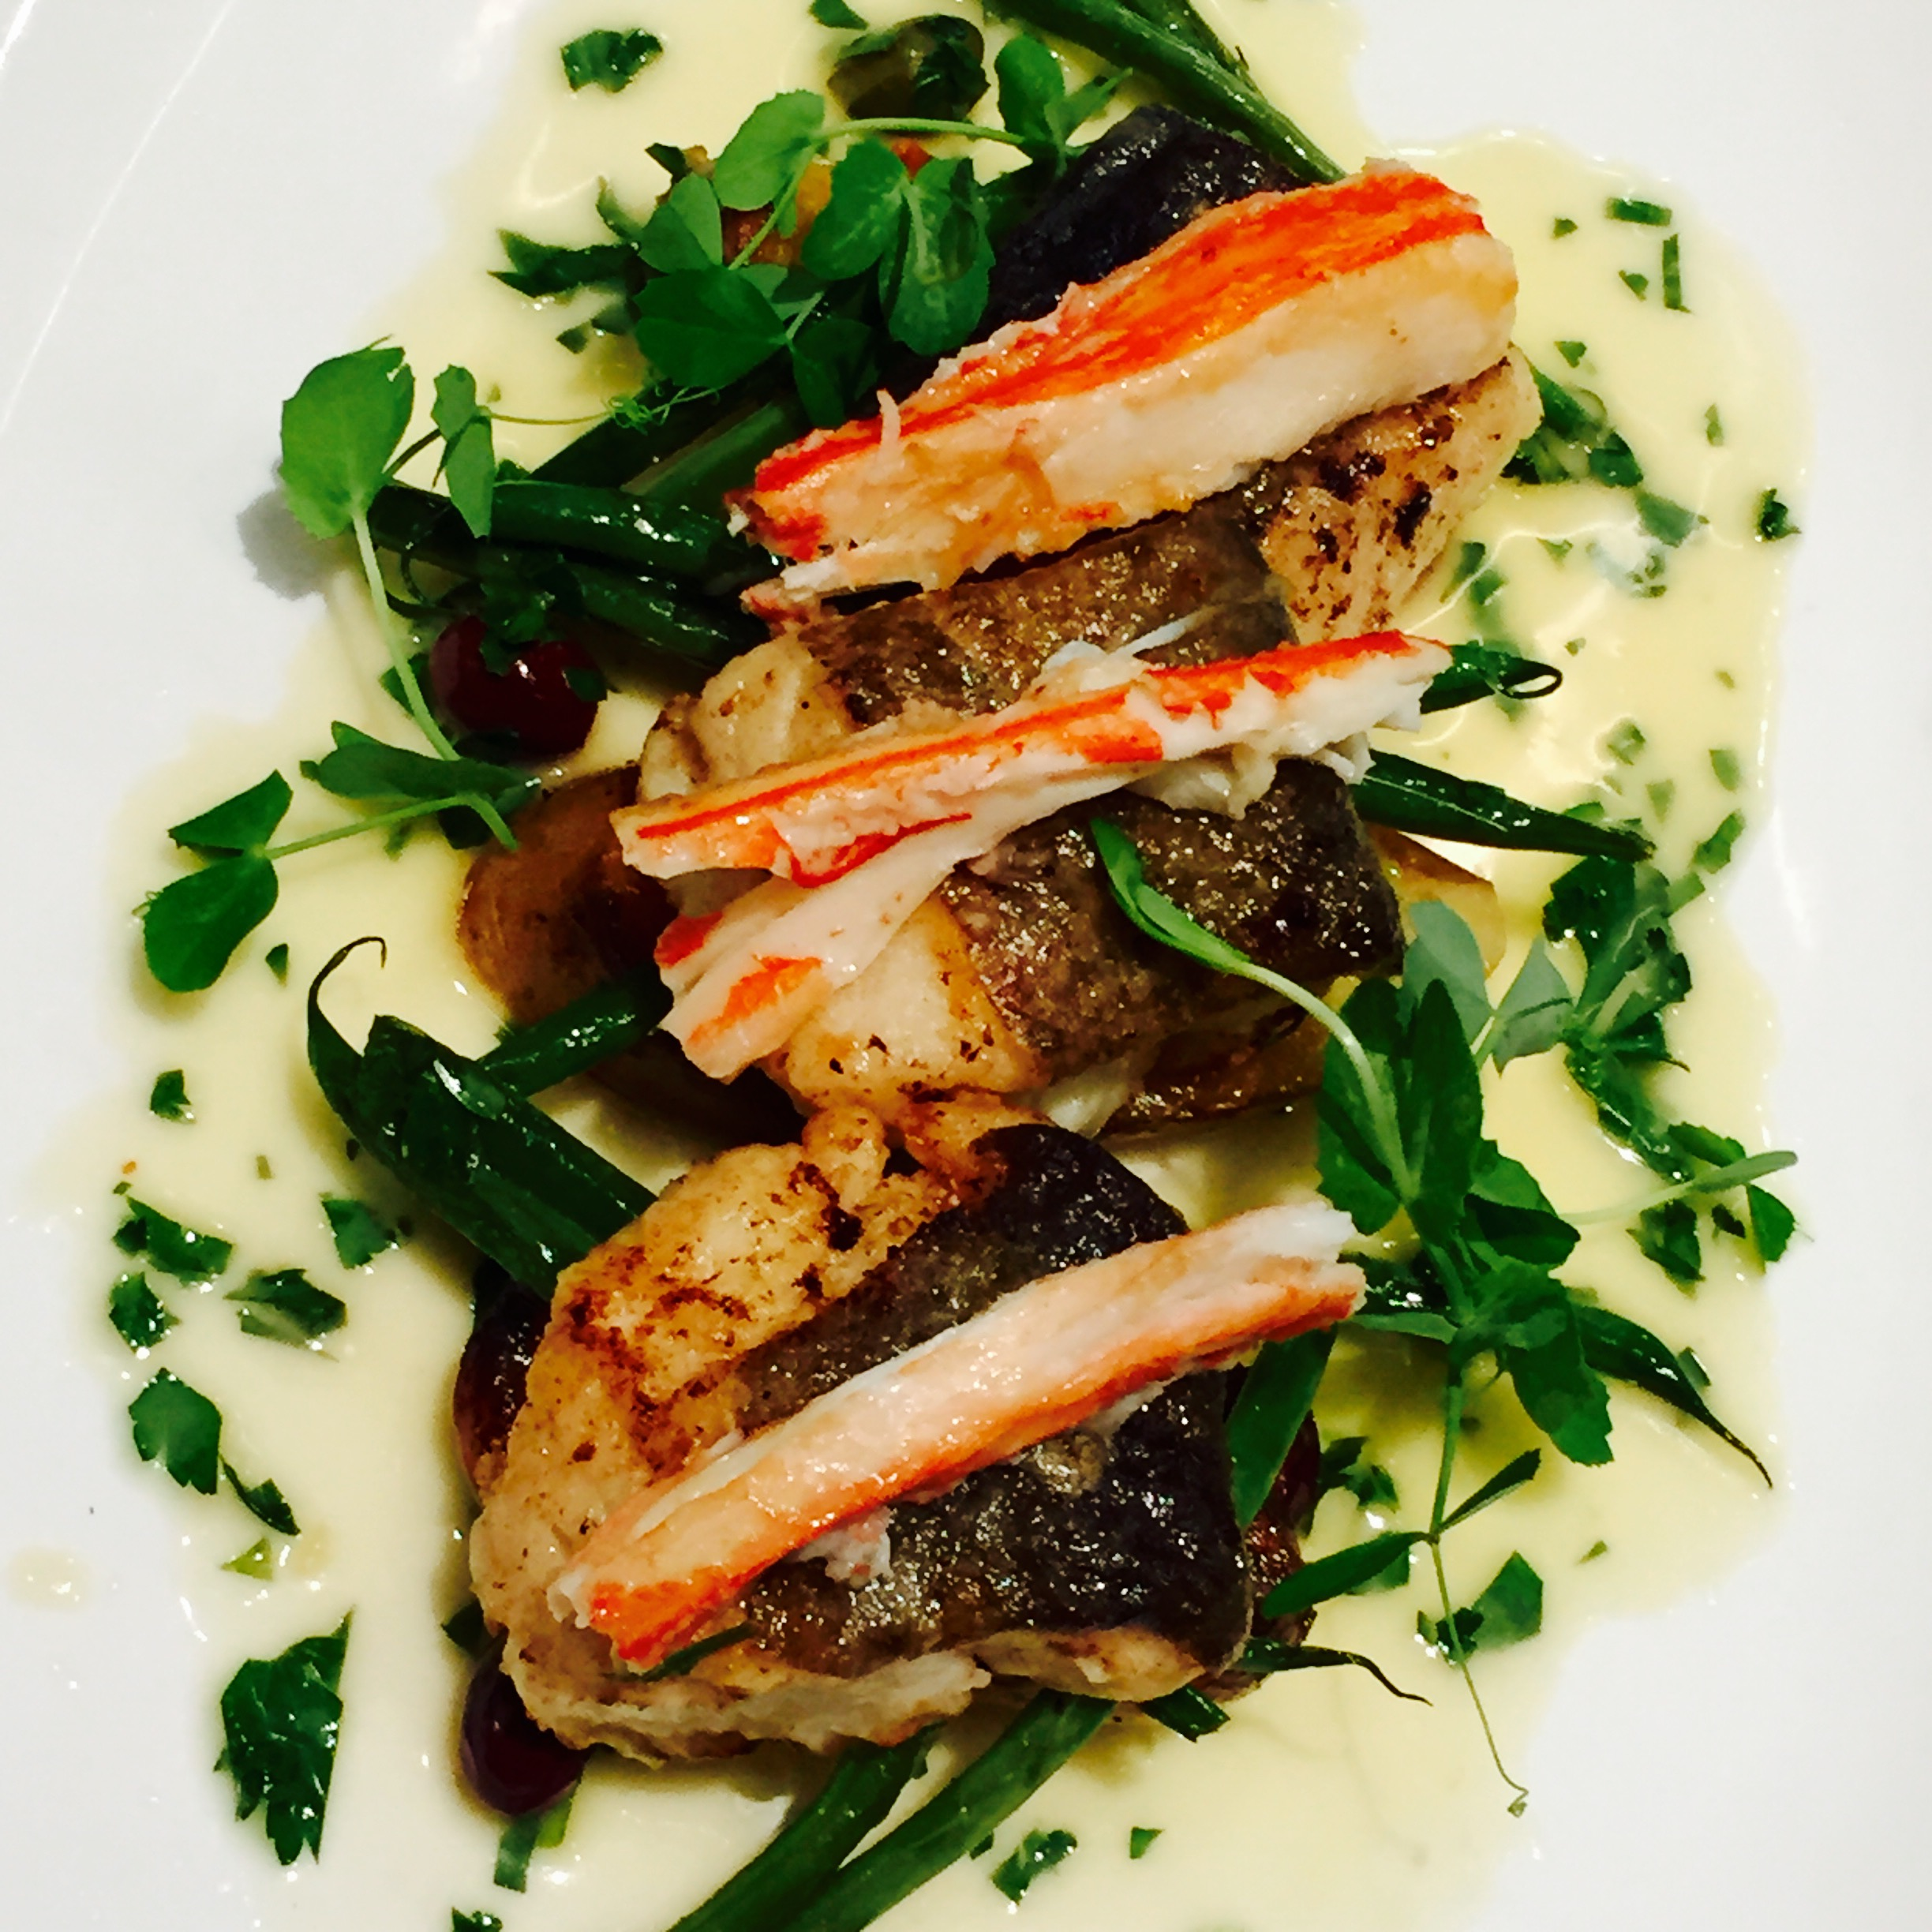 Seared Seabass with perfectly poached King Crab Legs in a rich herb butter sauce.